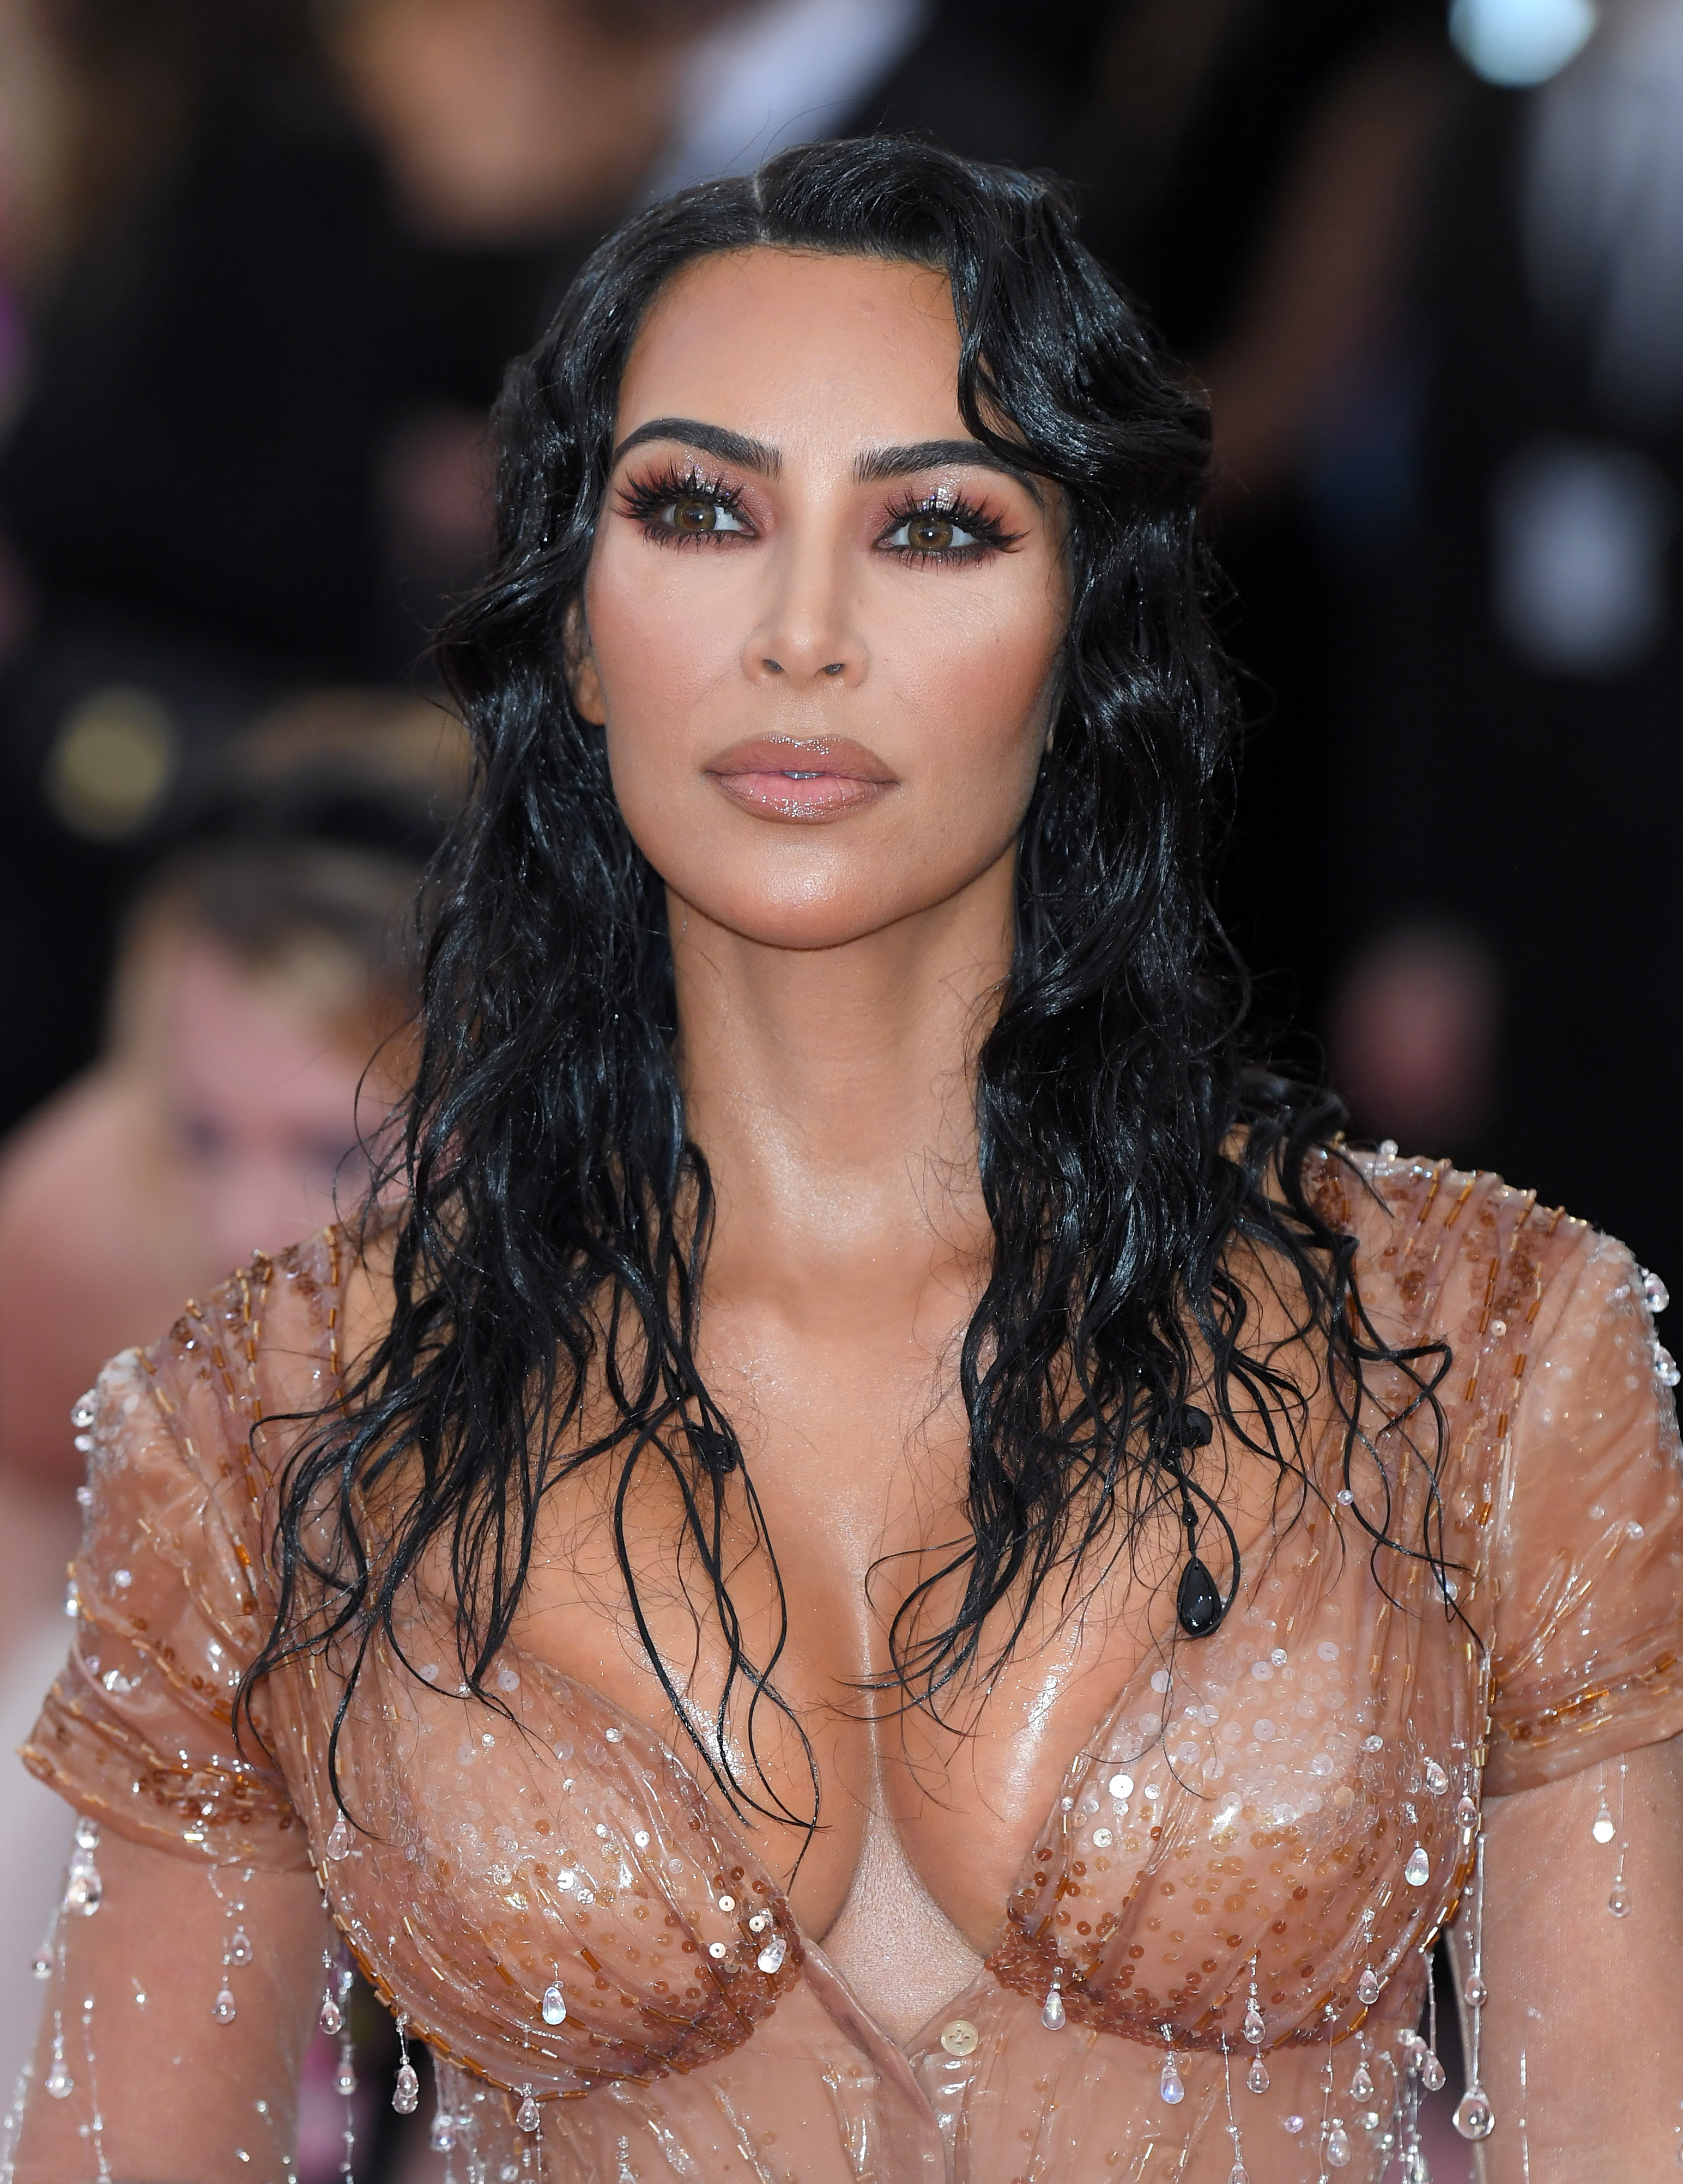 Kim Kardashian's Personal Trainer Claps Back at Critics of Her Super Cinched Waist at the Met Gala